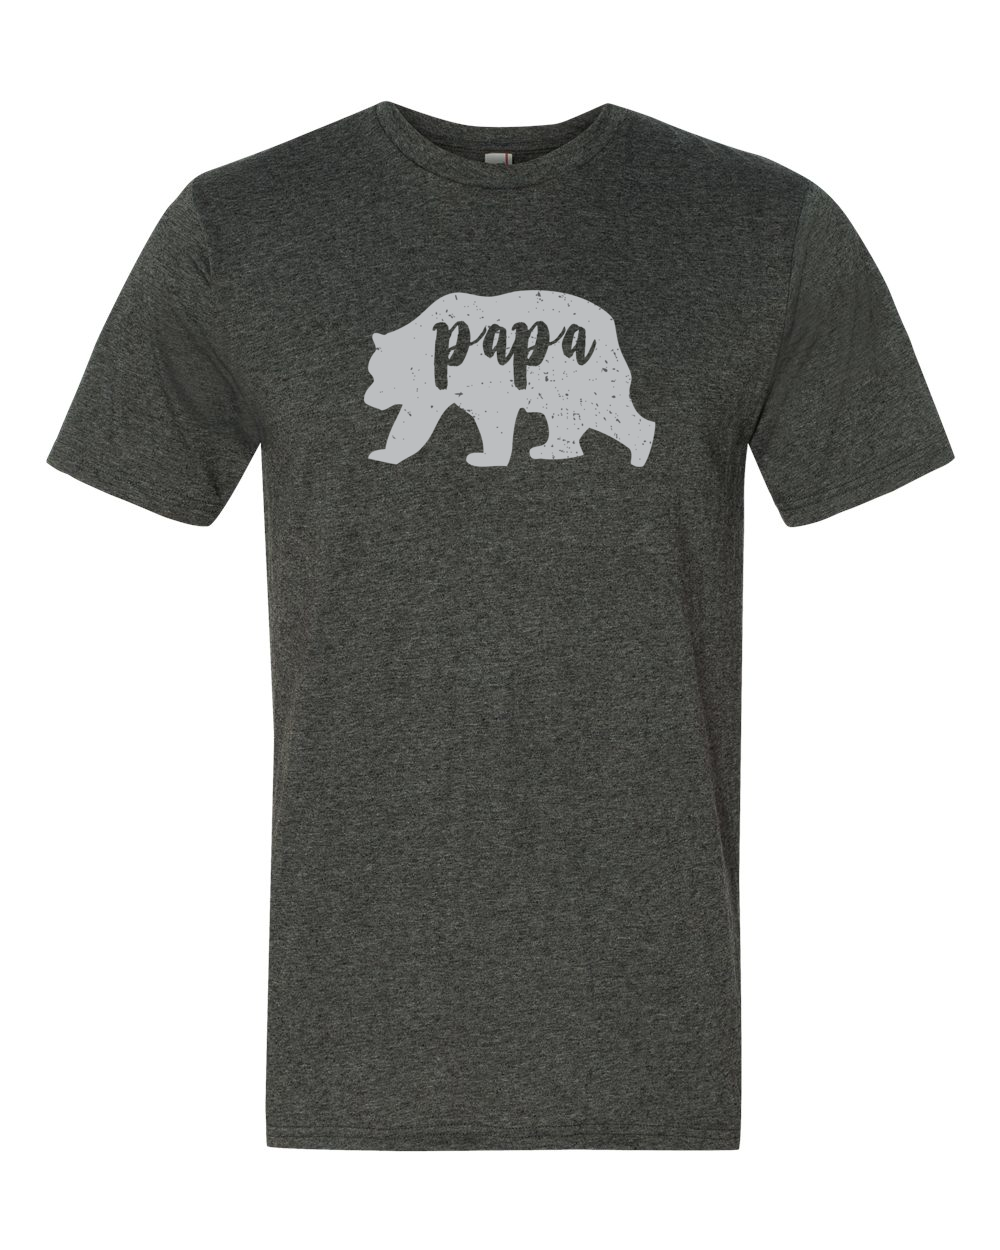 Papa Bear Shirt - Home Sweet Pillow Co